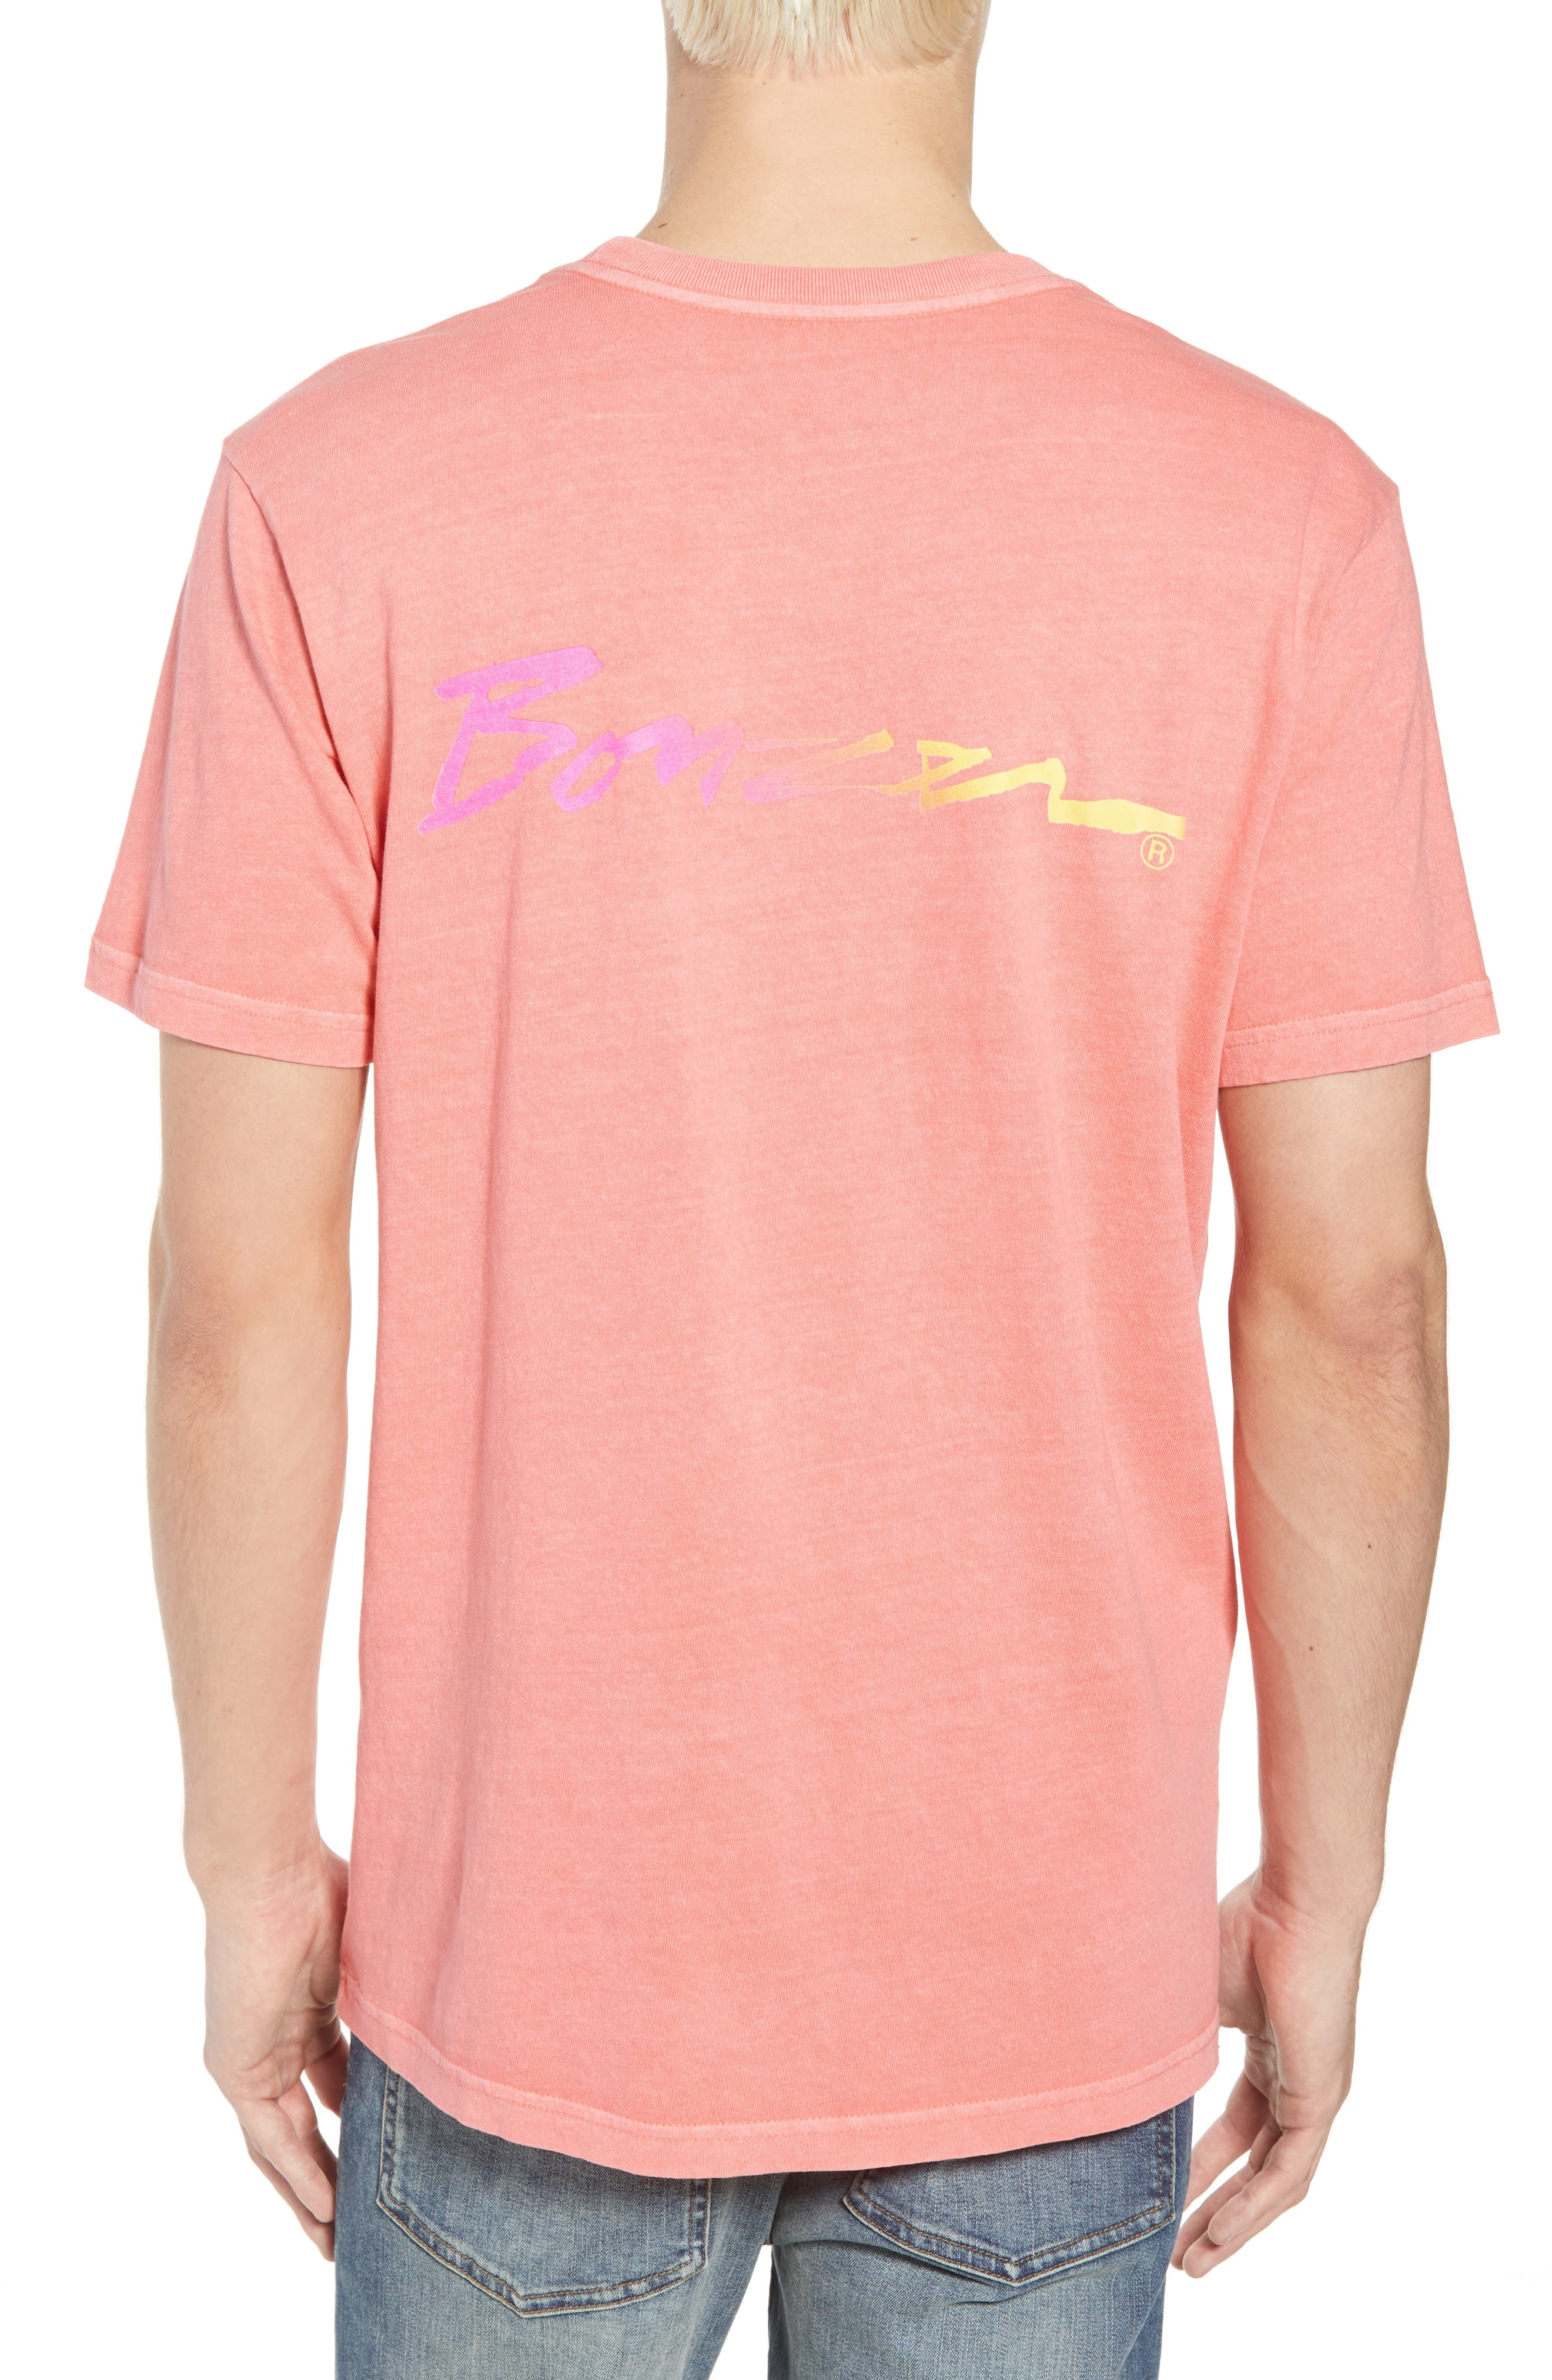 Campbell Brothers T-Shirt,                             Alternate thumbnail 2, color,                             PINK